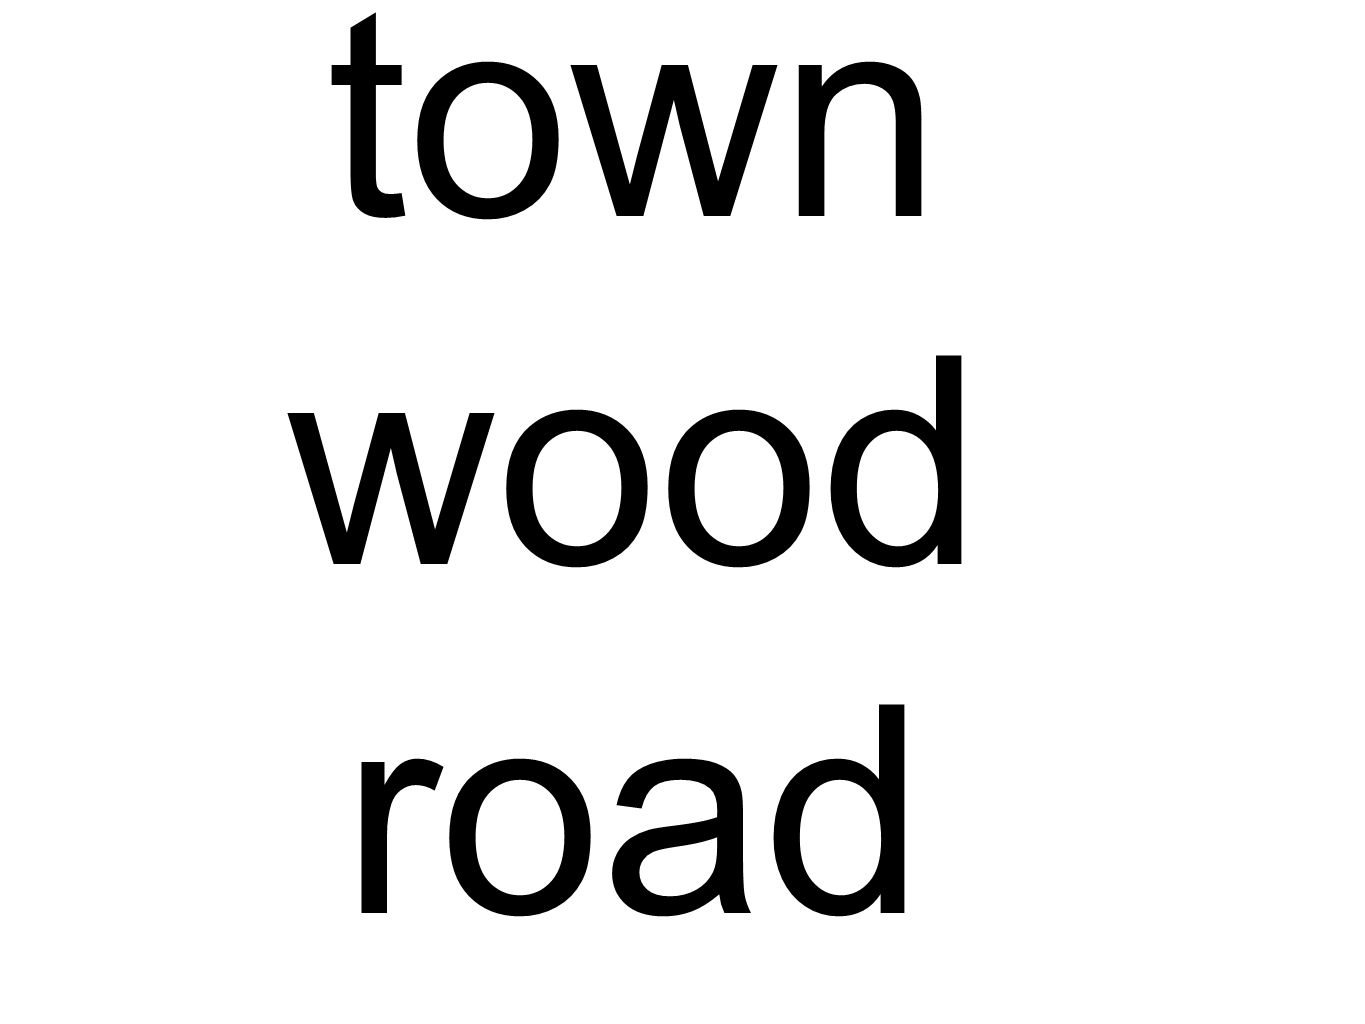 town wood road